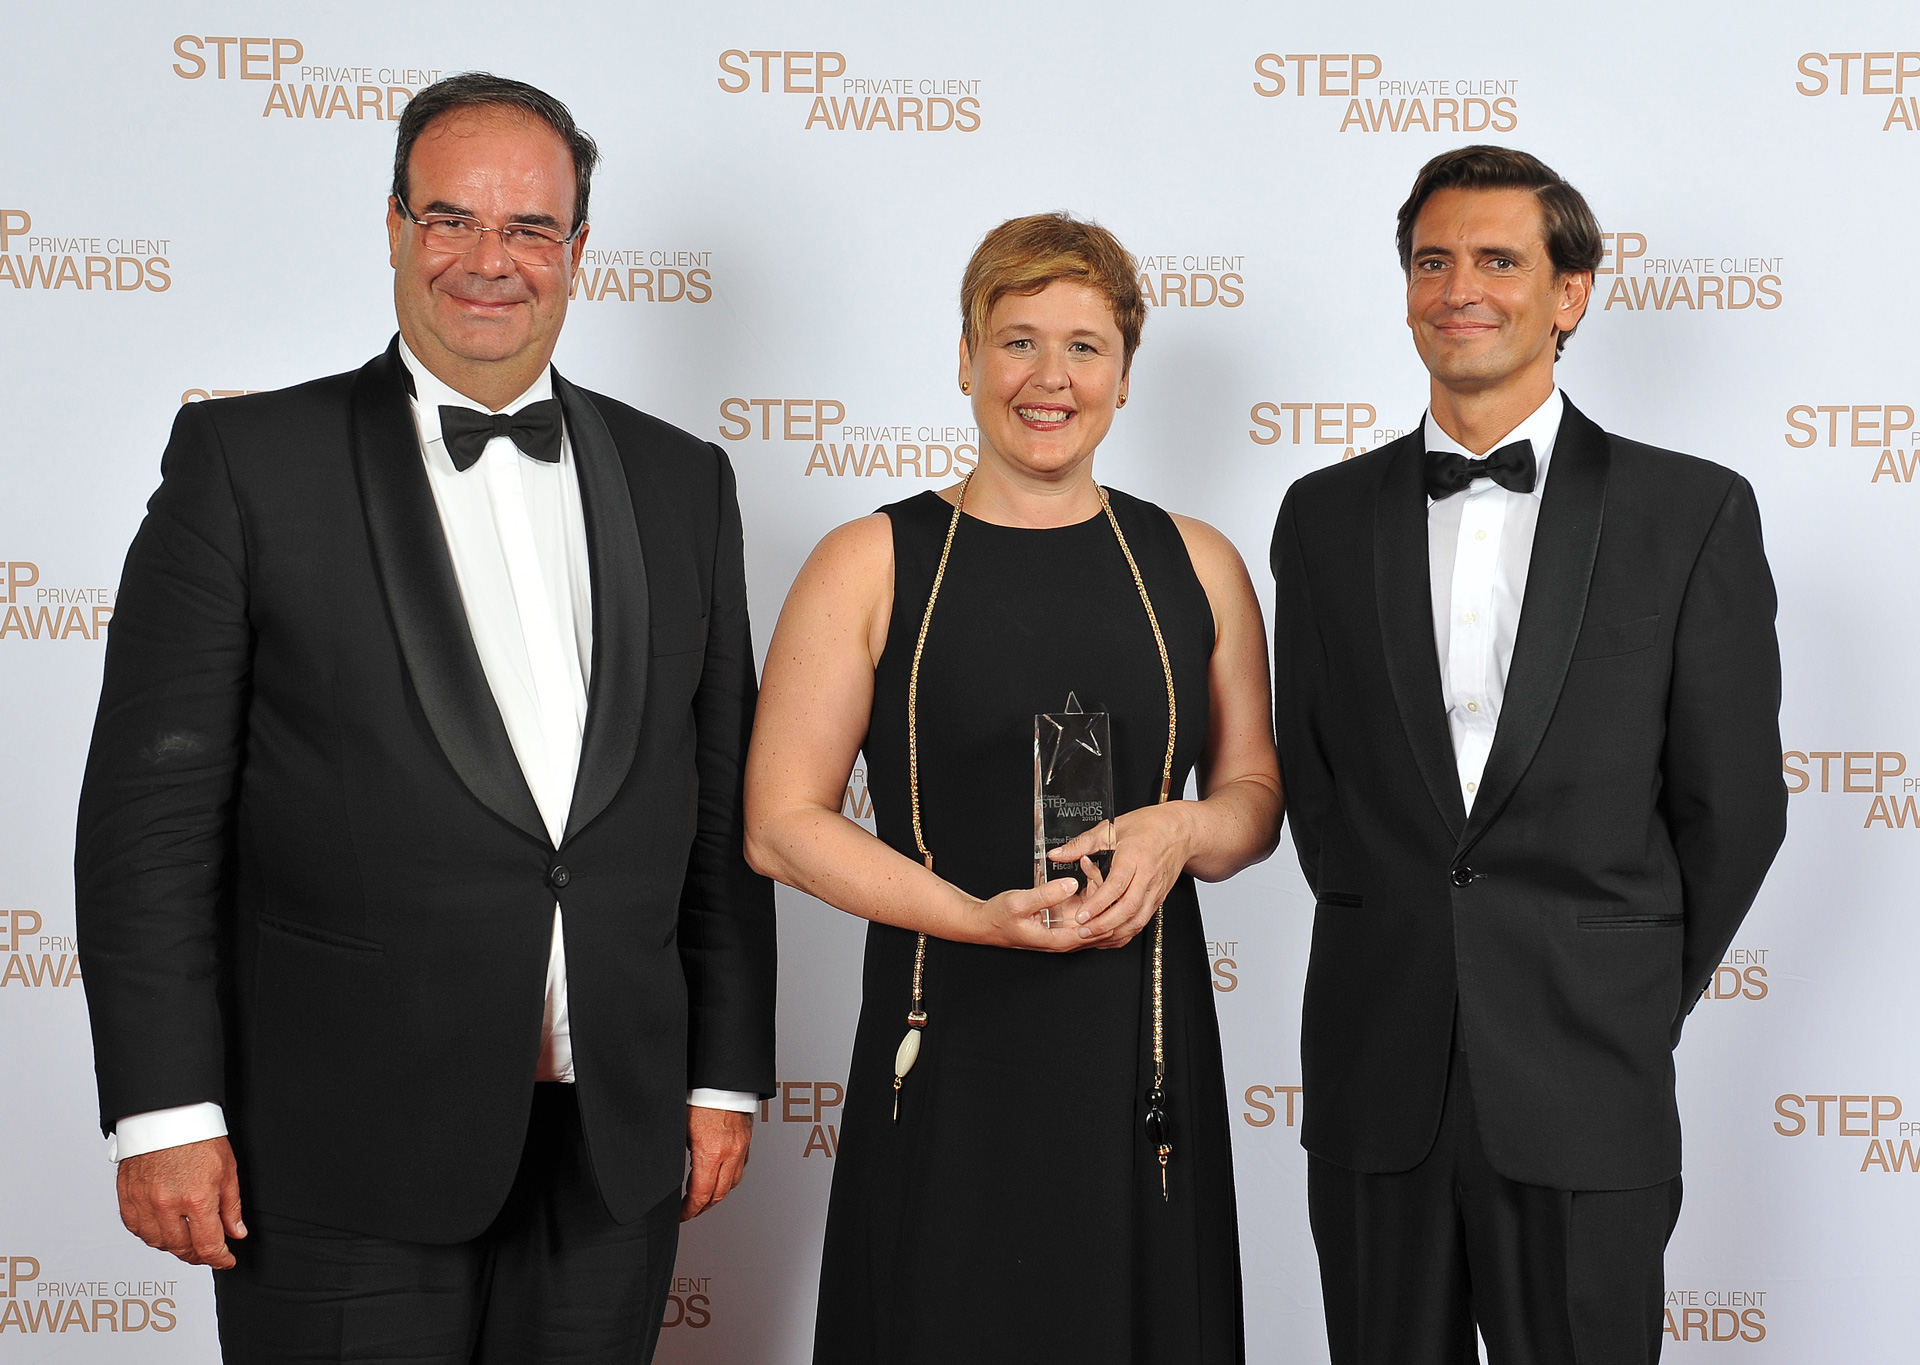 Avantia Asesoramiento Fiscal y Legal consigue el premio 'Boutique Firm' en los STEP Awards 2015